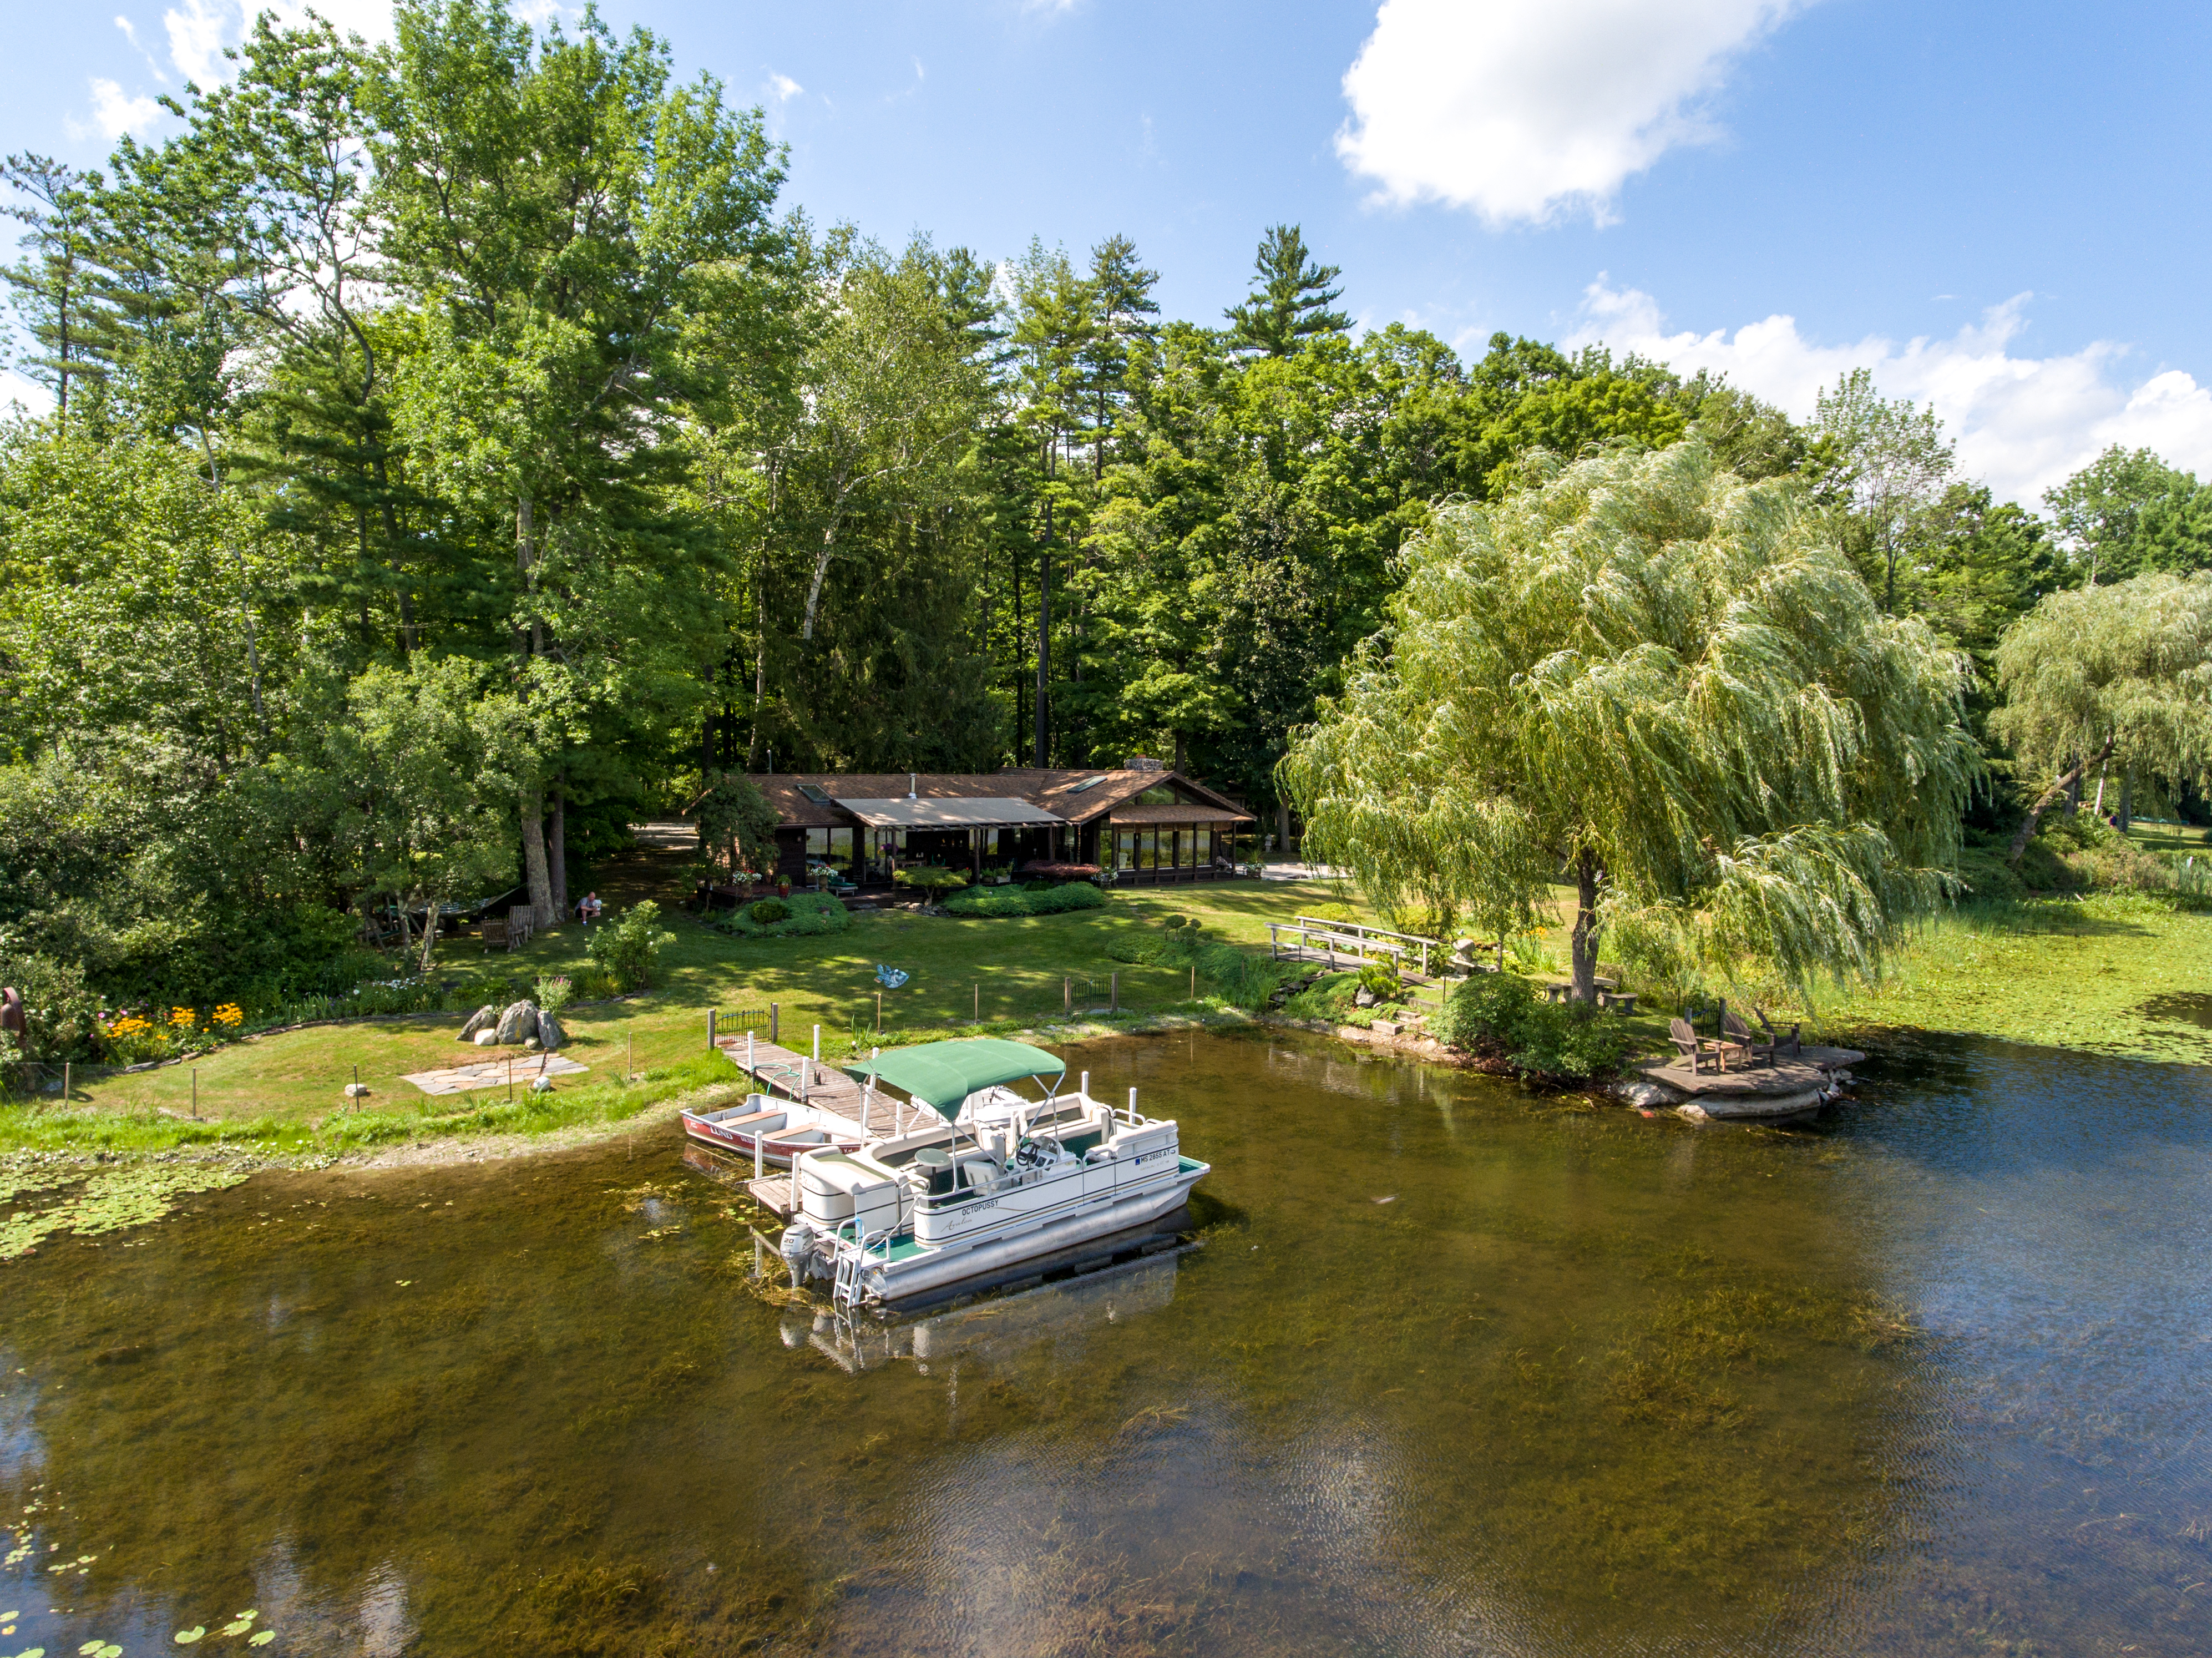 Single Family Home for Sale at Lakefront Compound on Stockbridge Bowl with 2 Homes 44 & 46 Lake Dr Stockbridge, Massachusetts, 01262 United States